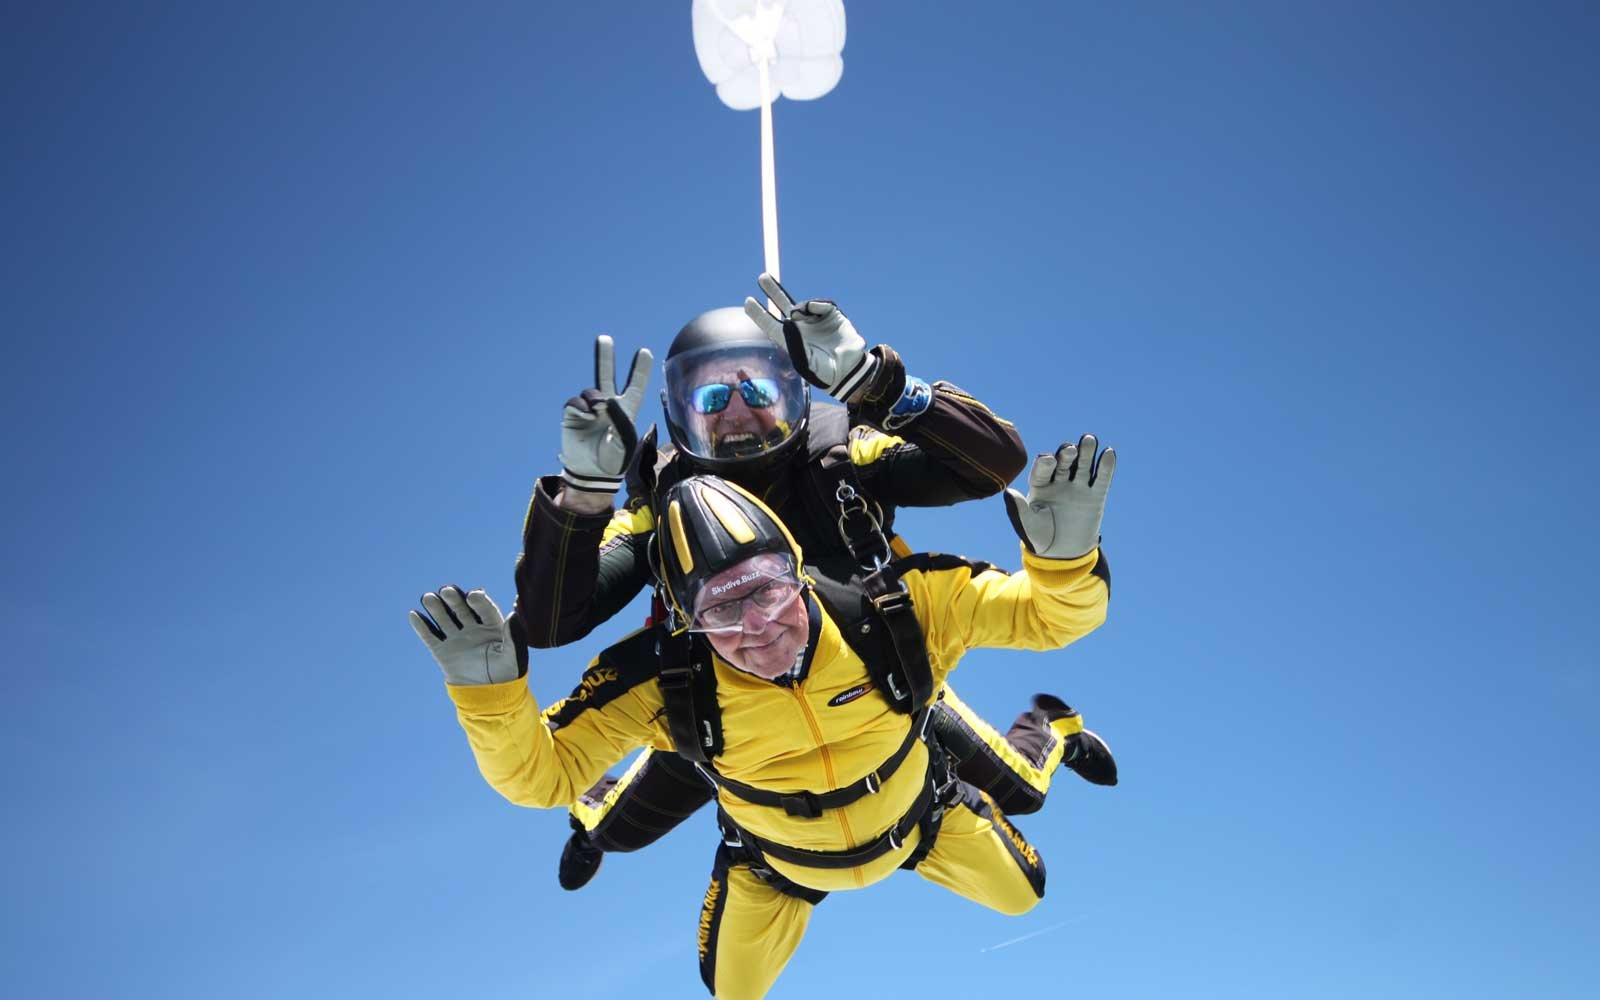 Verdun Hayes Oldest To Skydive